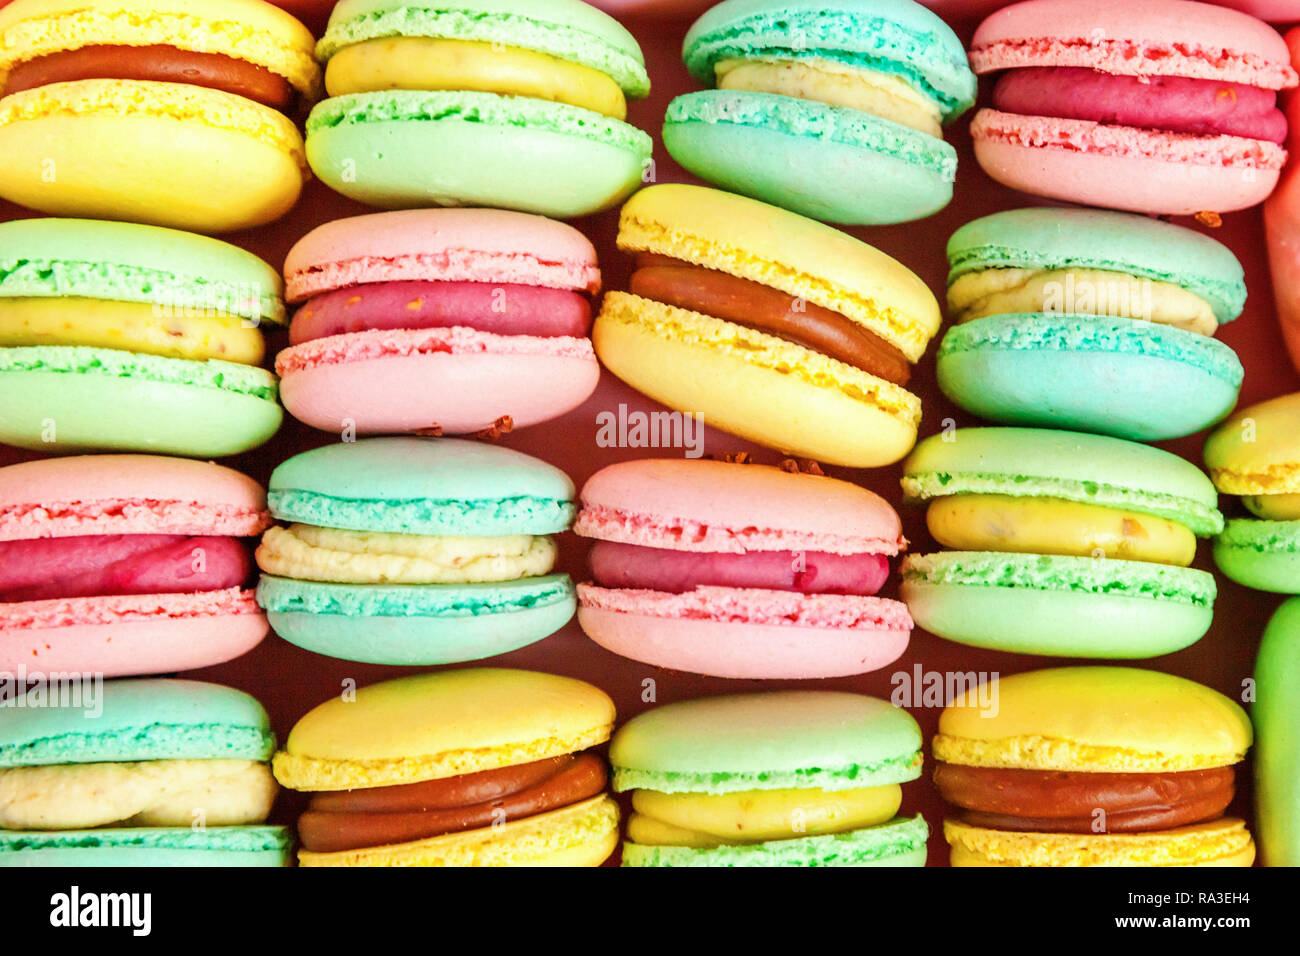 Sweet Almond Colorful Pink Blue Yellow Green Macaron Or Macaroon Dessert Cake Background French Sweet Cookie Minimal Food Bakery Concept Flat La Stock Photo Alamy